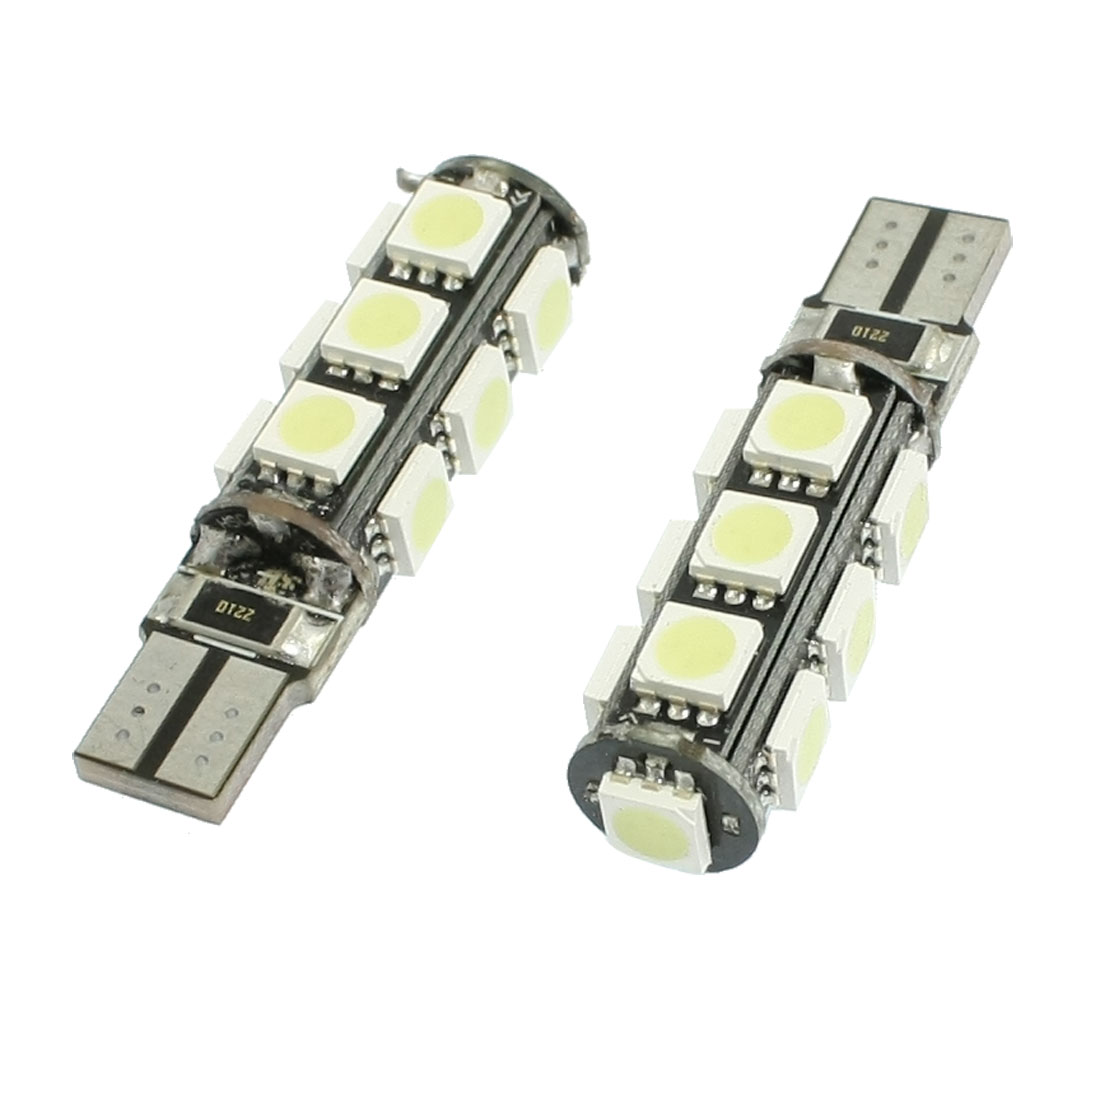 2 Pcs T10 194 168 White 5050 SMD 13 LED Canbus Wedge Light Bulb Lamp